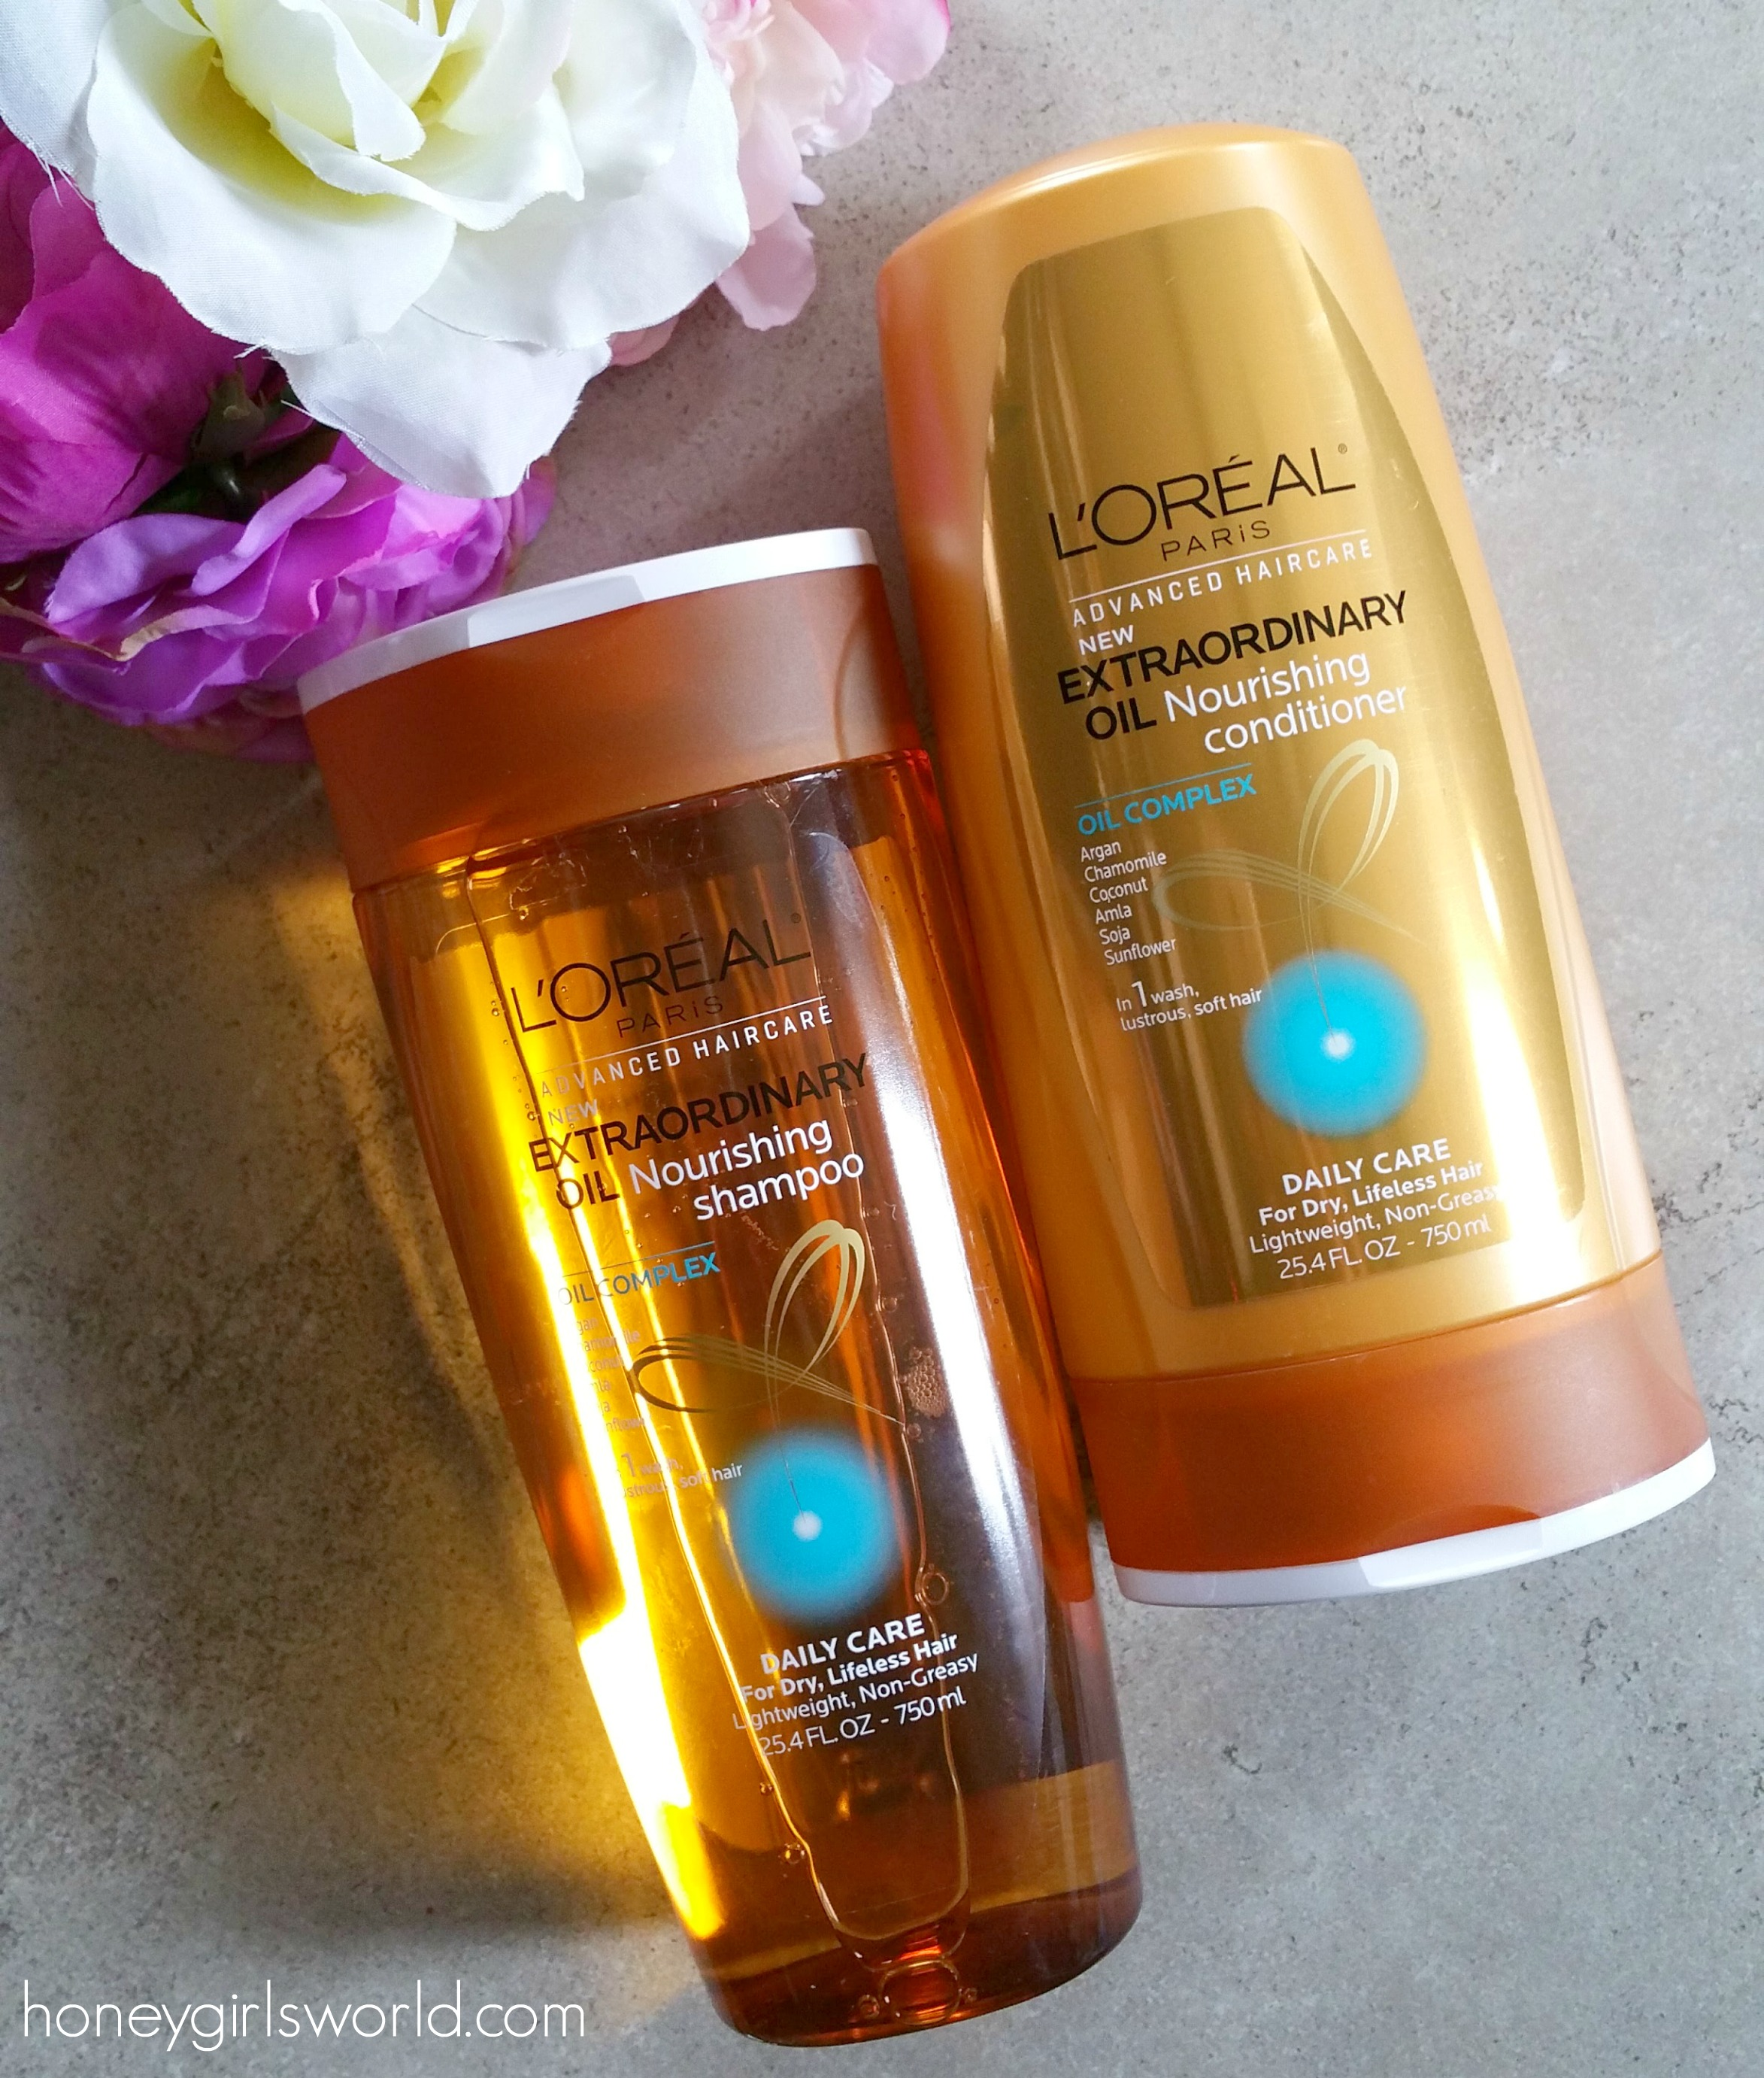 L'Oreal Paris, L'Oreal, extraordinary oil nourishing shampoo, extraordinary oil, hair care, hair, haircare, hair products, shampoo, conditioner, mask, hair mask, L'Oreal hair, curly hair,